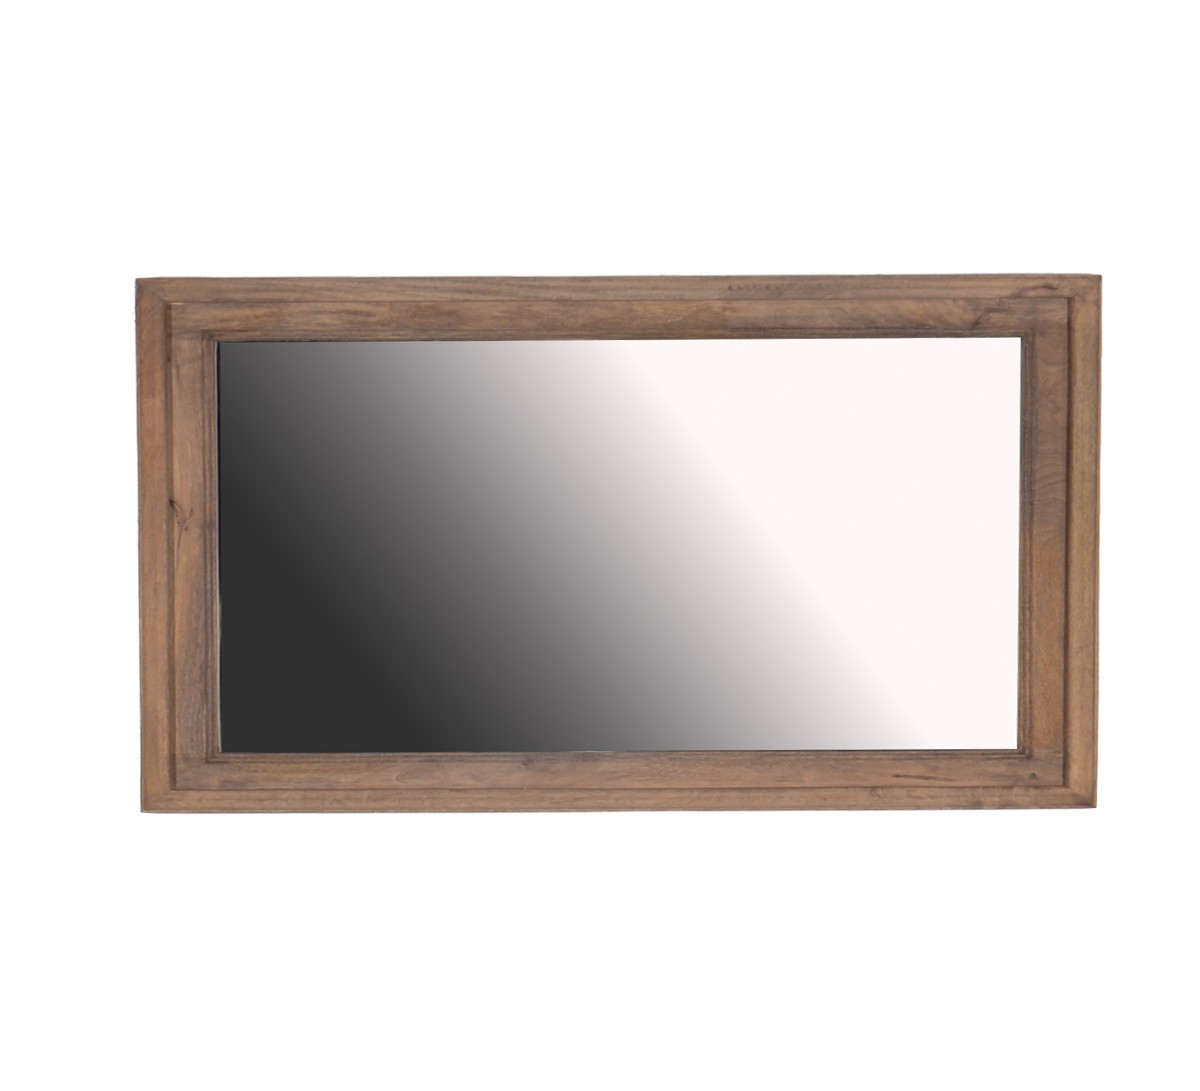 Miroir 90 x 60 id es de d coration int rieure french decor for Miroir 60 x 100